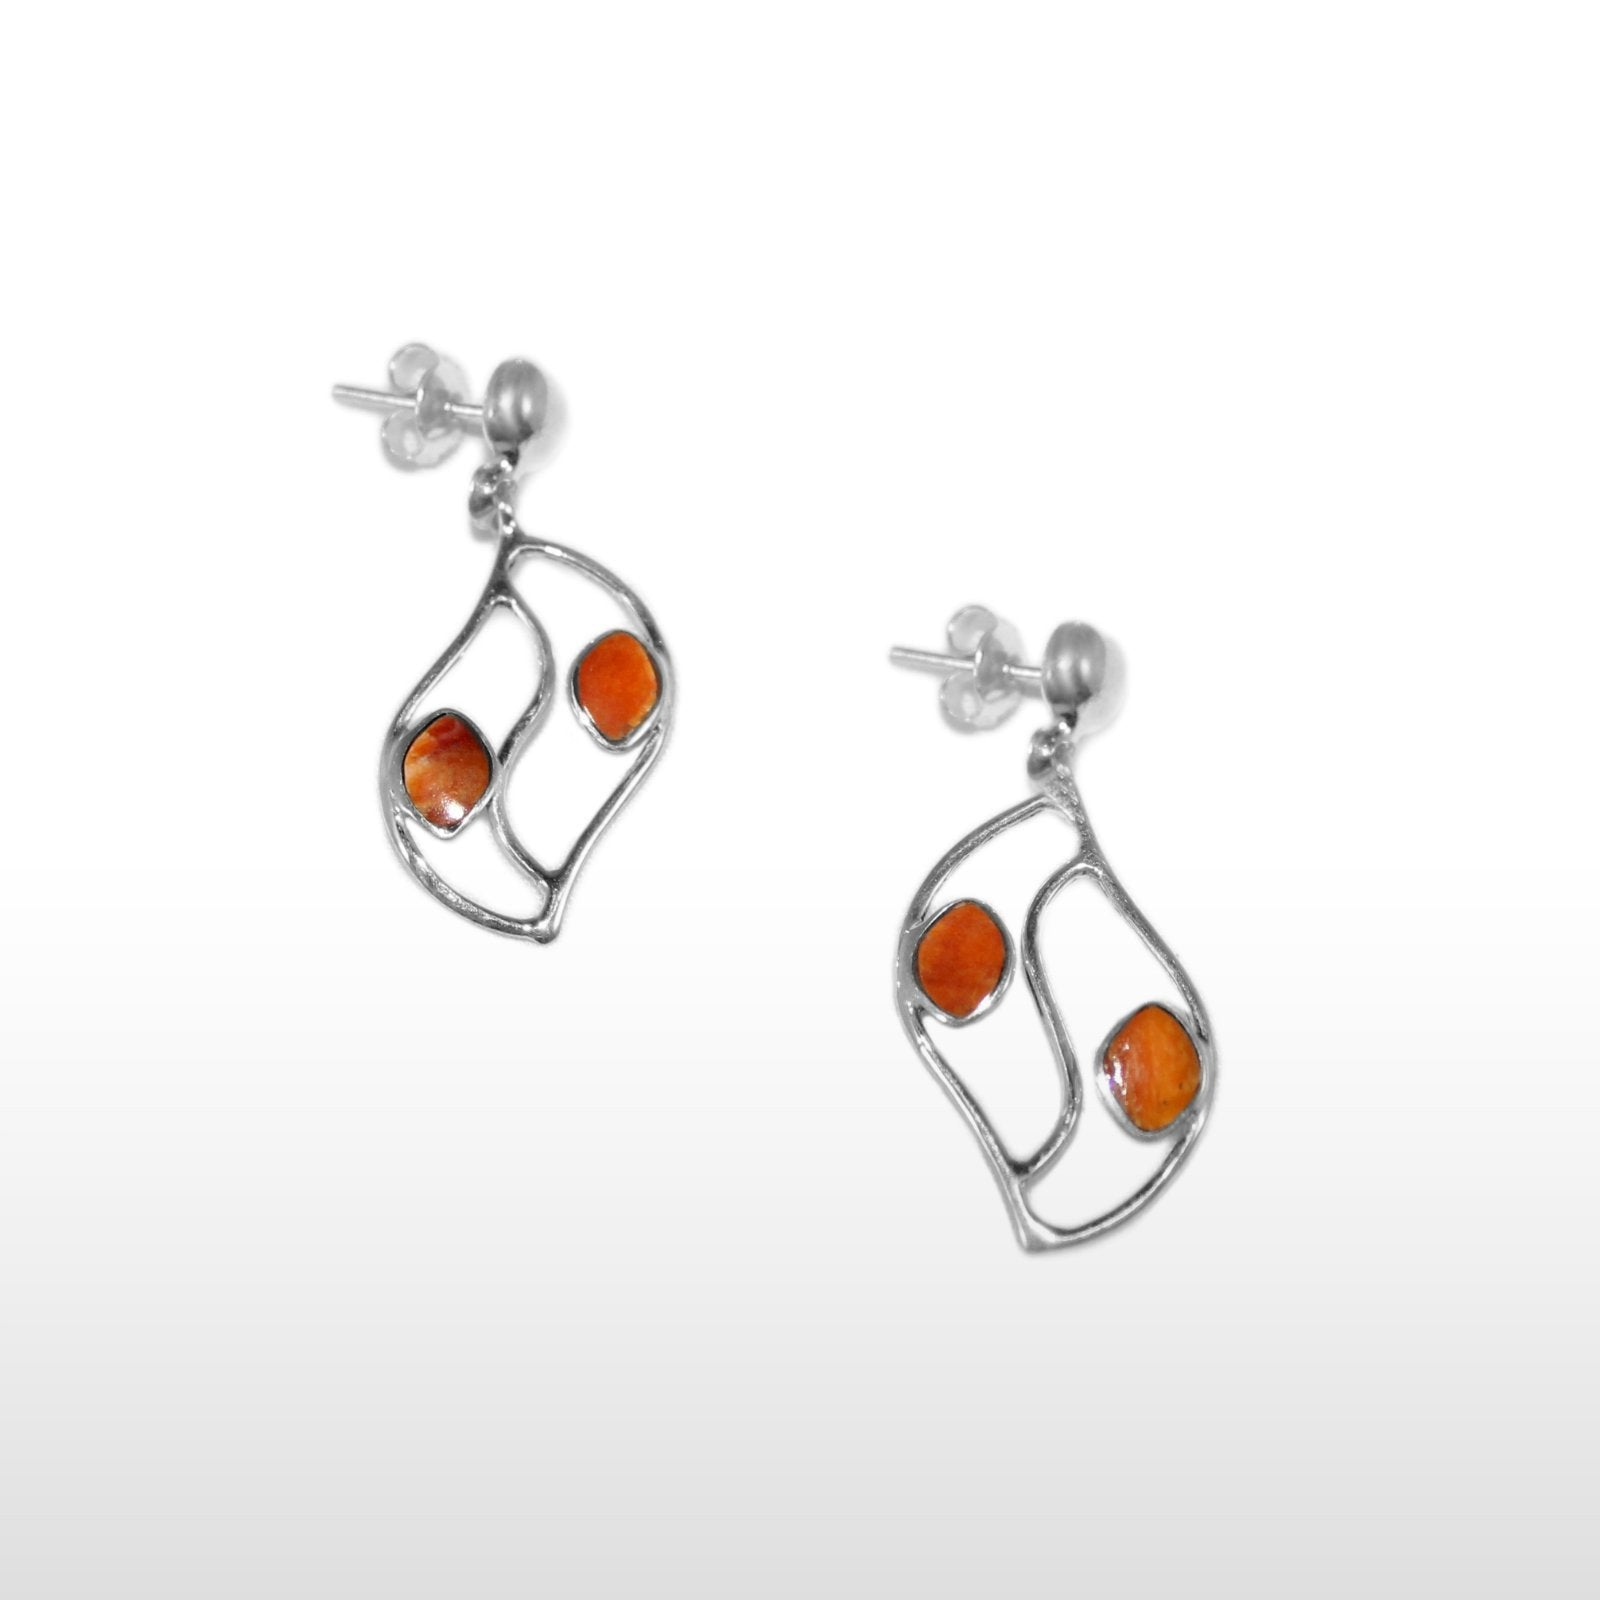 Orange Spiny Oyster & Sterling Silver Leaves Pendant & Earrings Set - Qinti - The Peruvian Shop